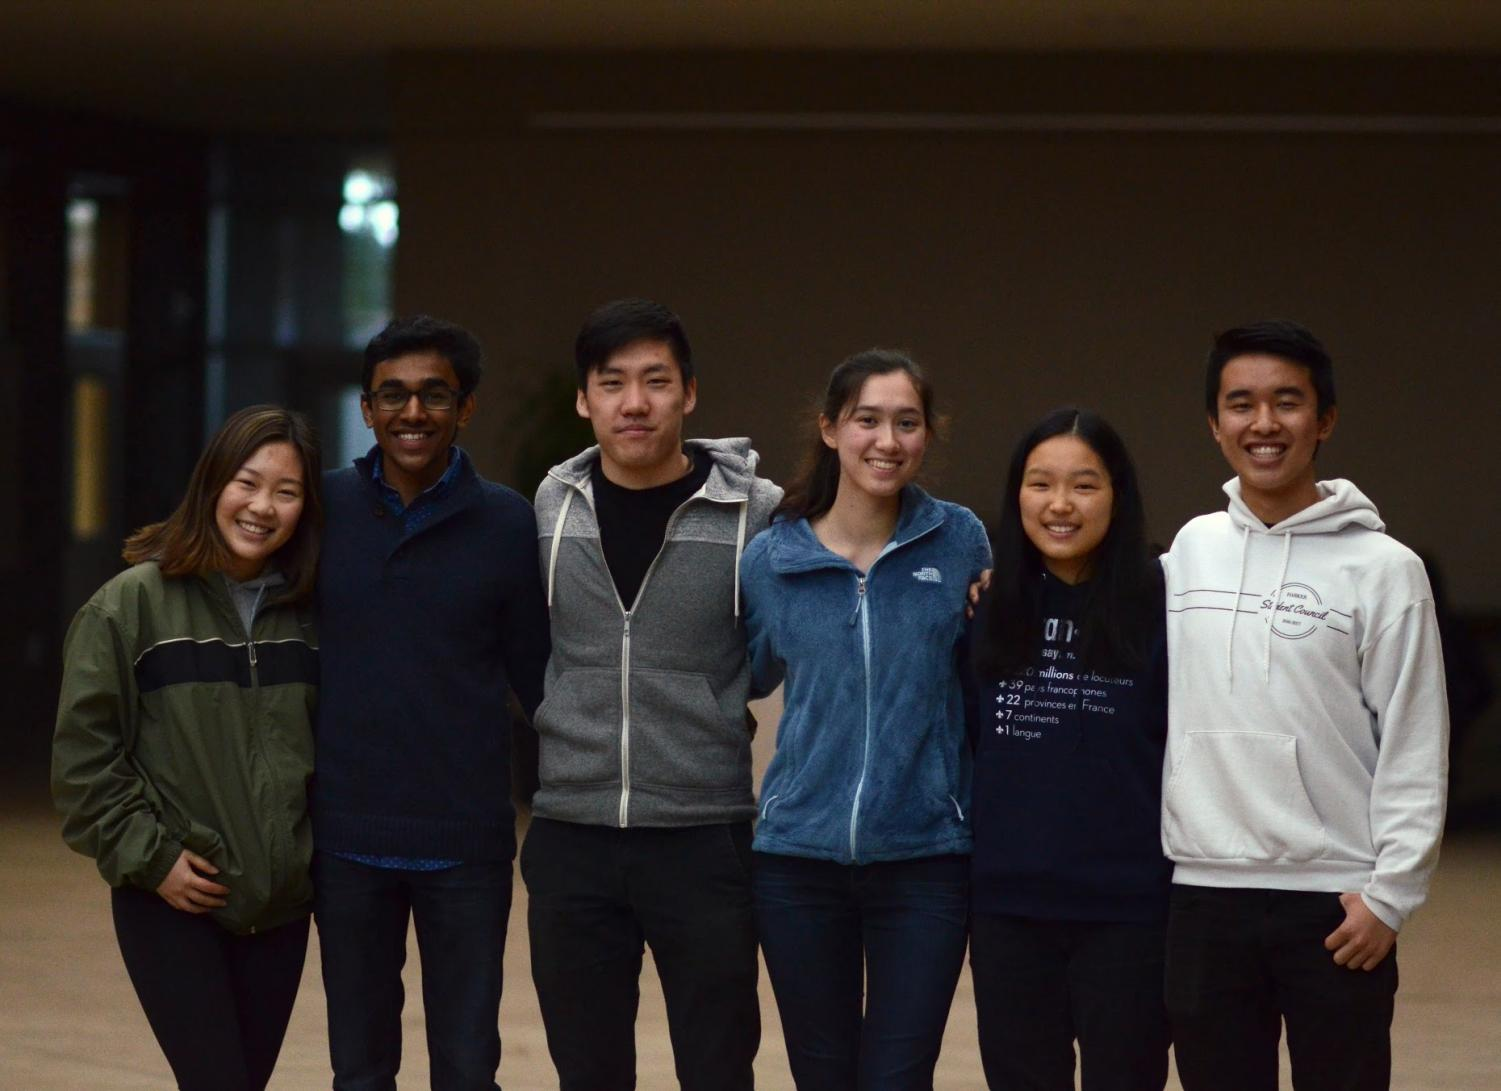 Regeneron scholars Eleanor Xiao, Rajiv Movva, Justin Xie, Amy Dunphy, Amy Jin and Jimmy Lin. The seniors were six of 300 scholars named nationwide in the competition.